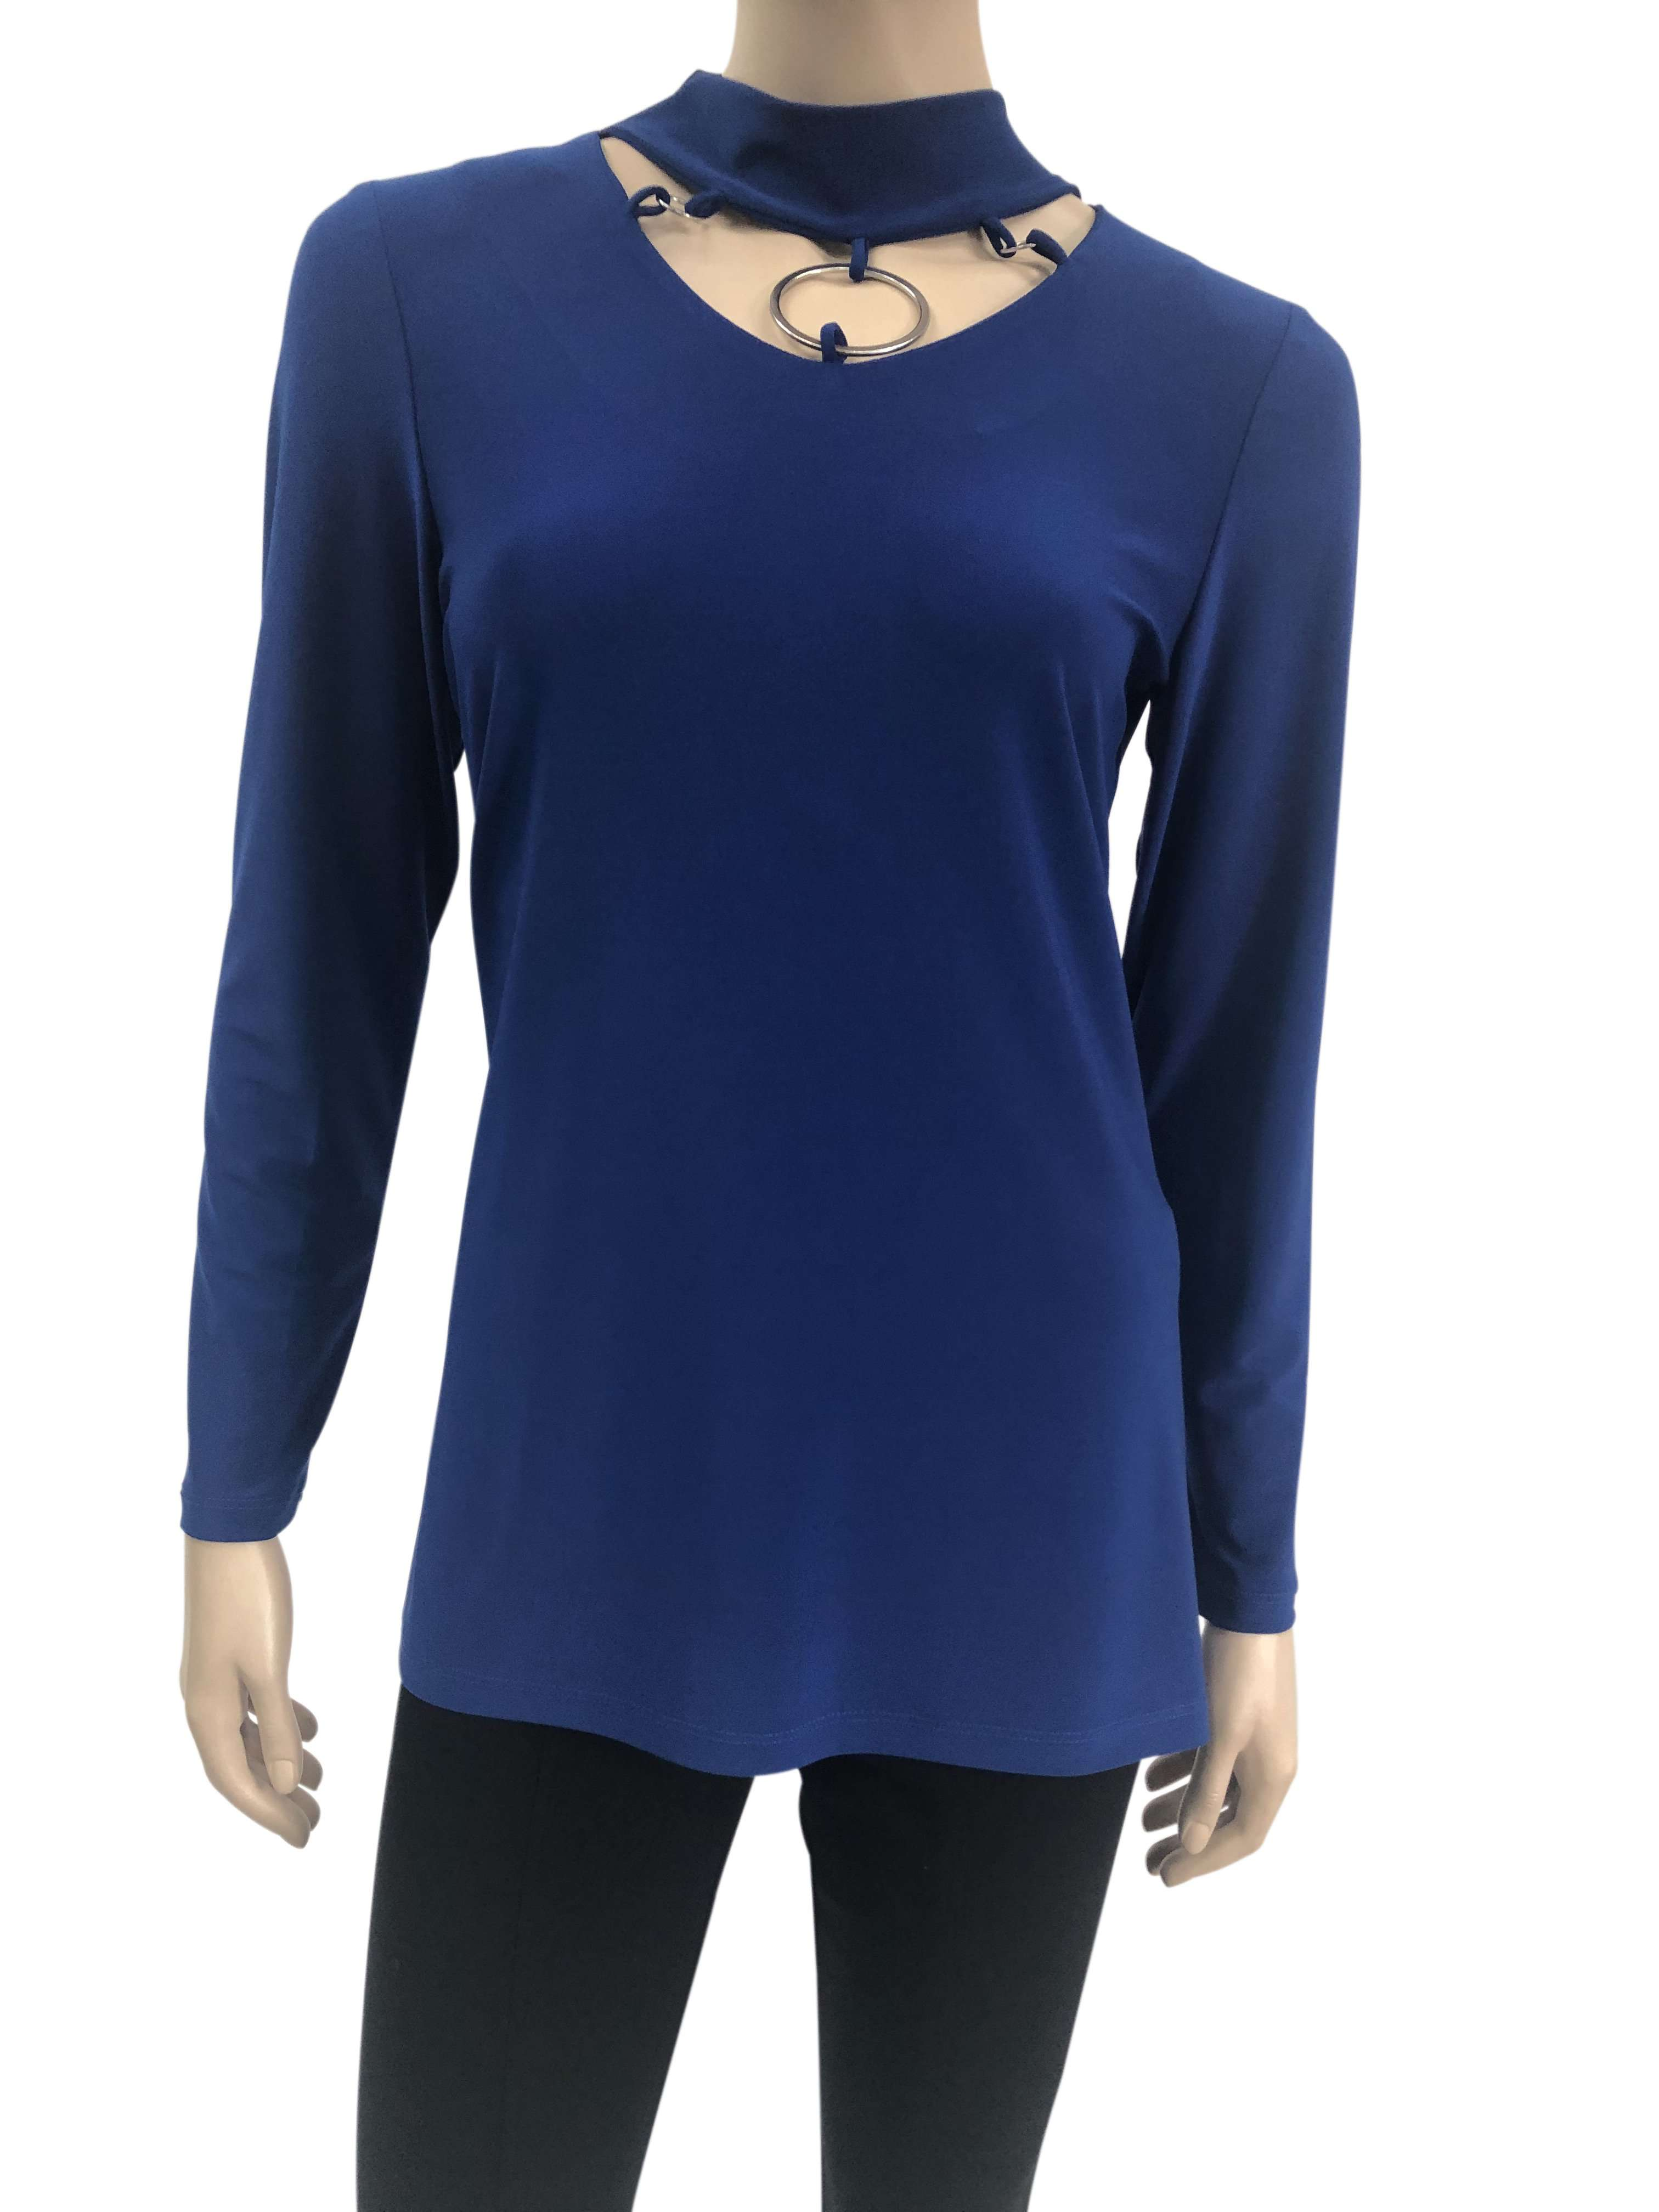 Womens Blouses Canada | Royal Blue Long Sleeve Blouse | Ym Style - Yvonne Marie